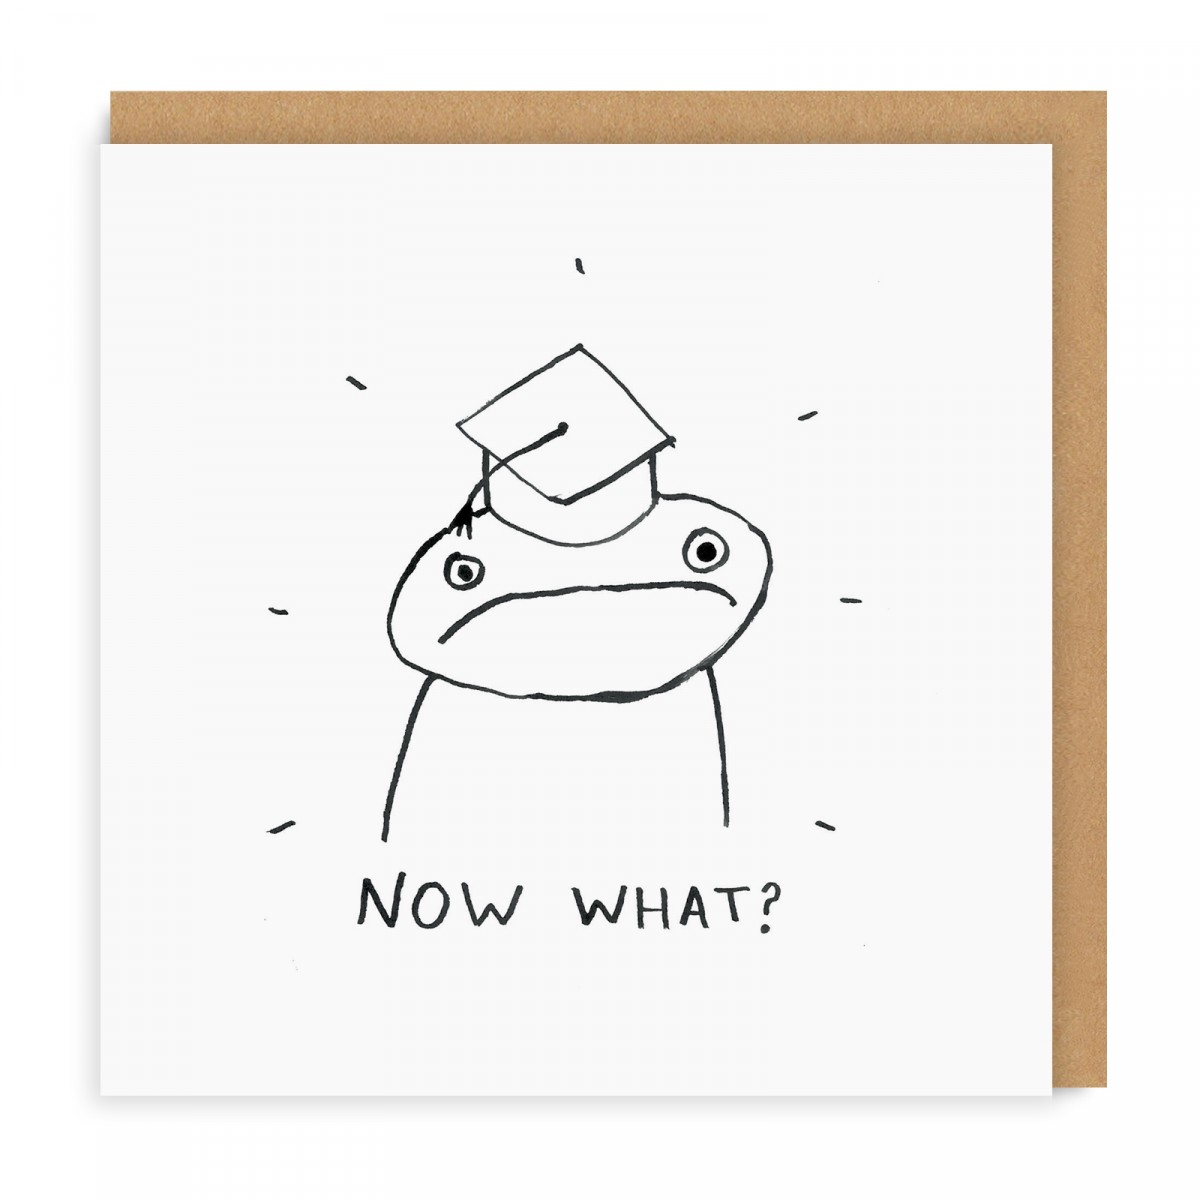 NOW WHAT? GREETING CARD - We're all thinking it. Let's all joke about it and hope that the post-grad fear is swept under the carpet! The perfect card for the scariest of occasions.